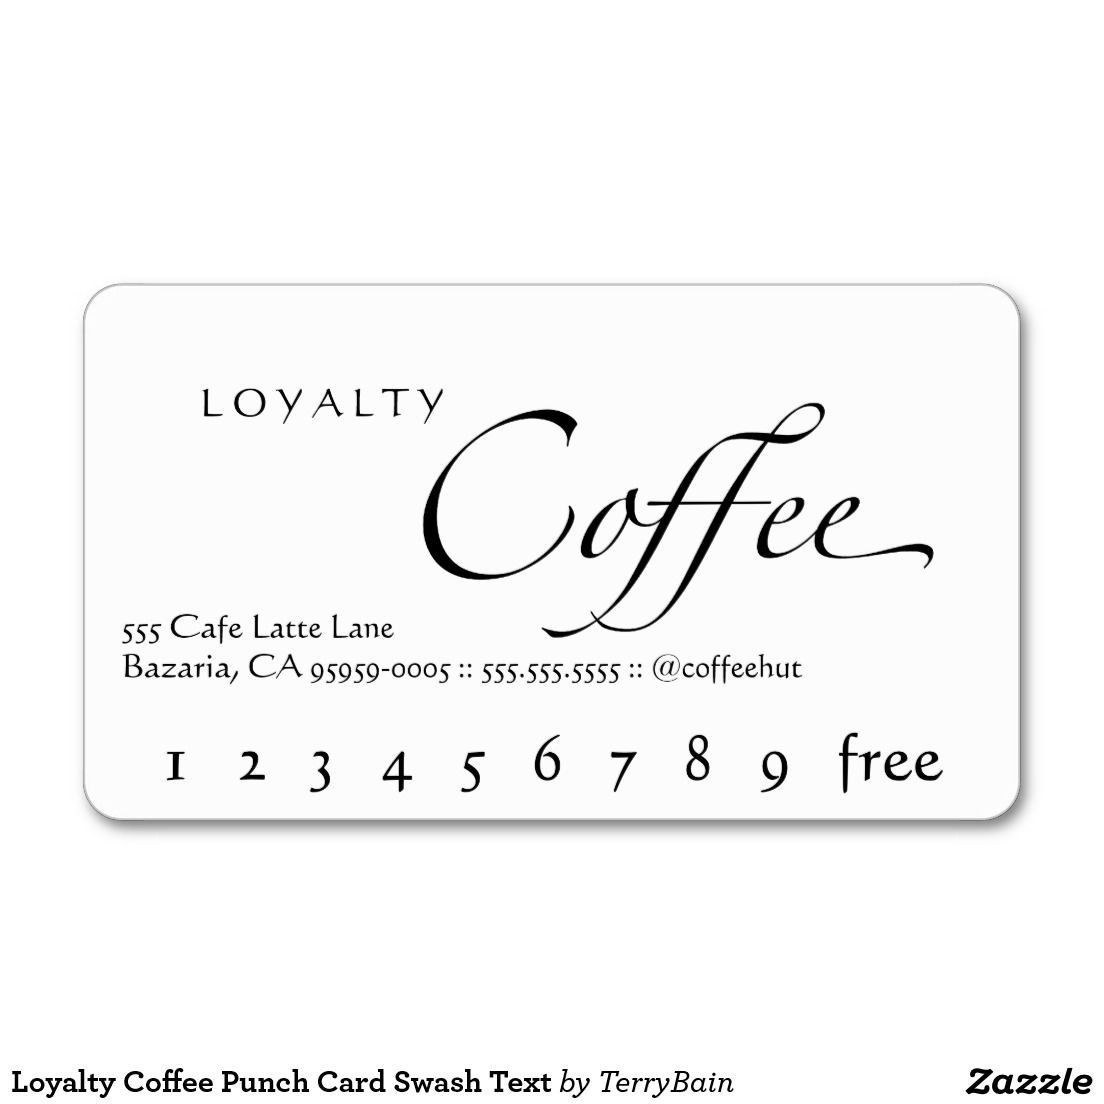 Loyalty Coffee Punch Card Swash Text Business Card | Loyal to Coffee ...